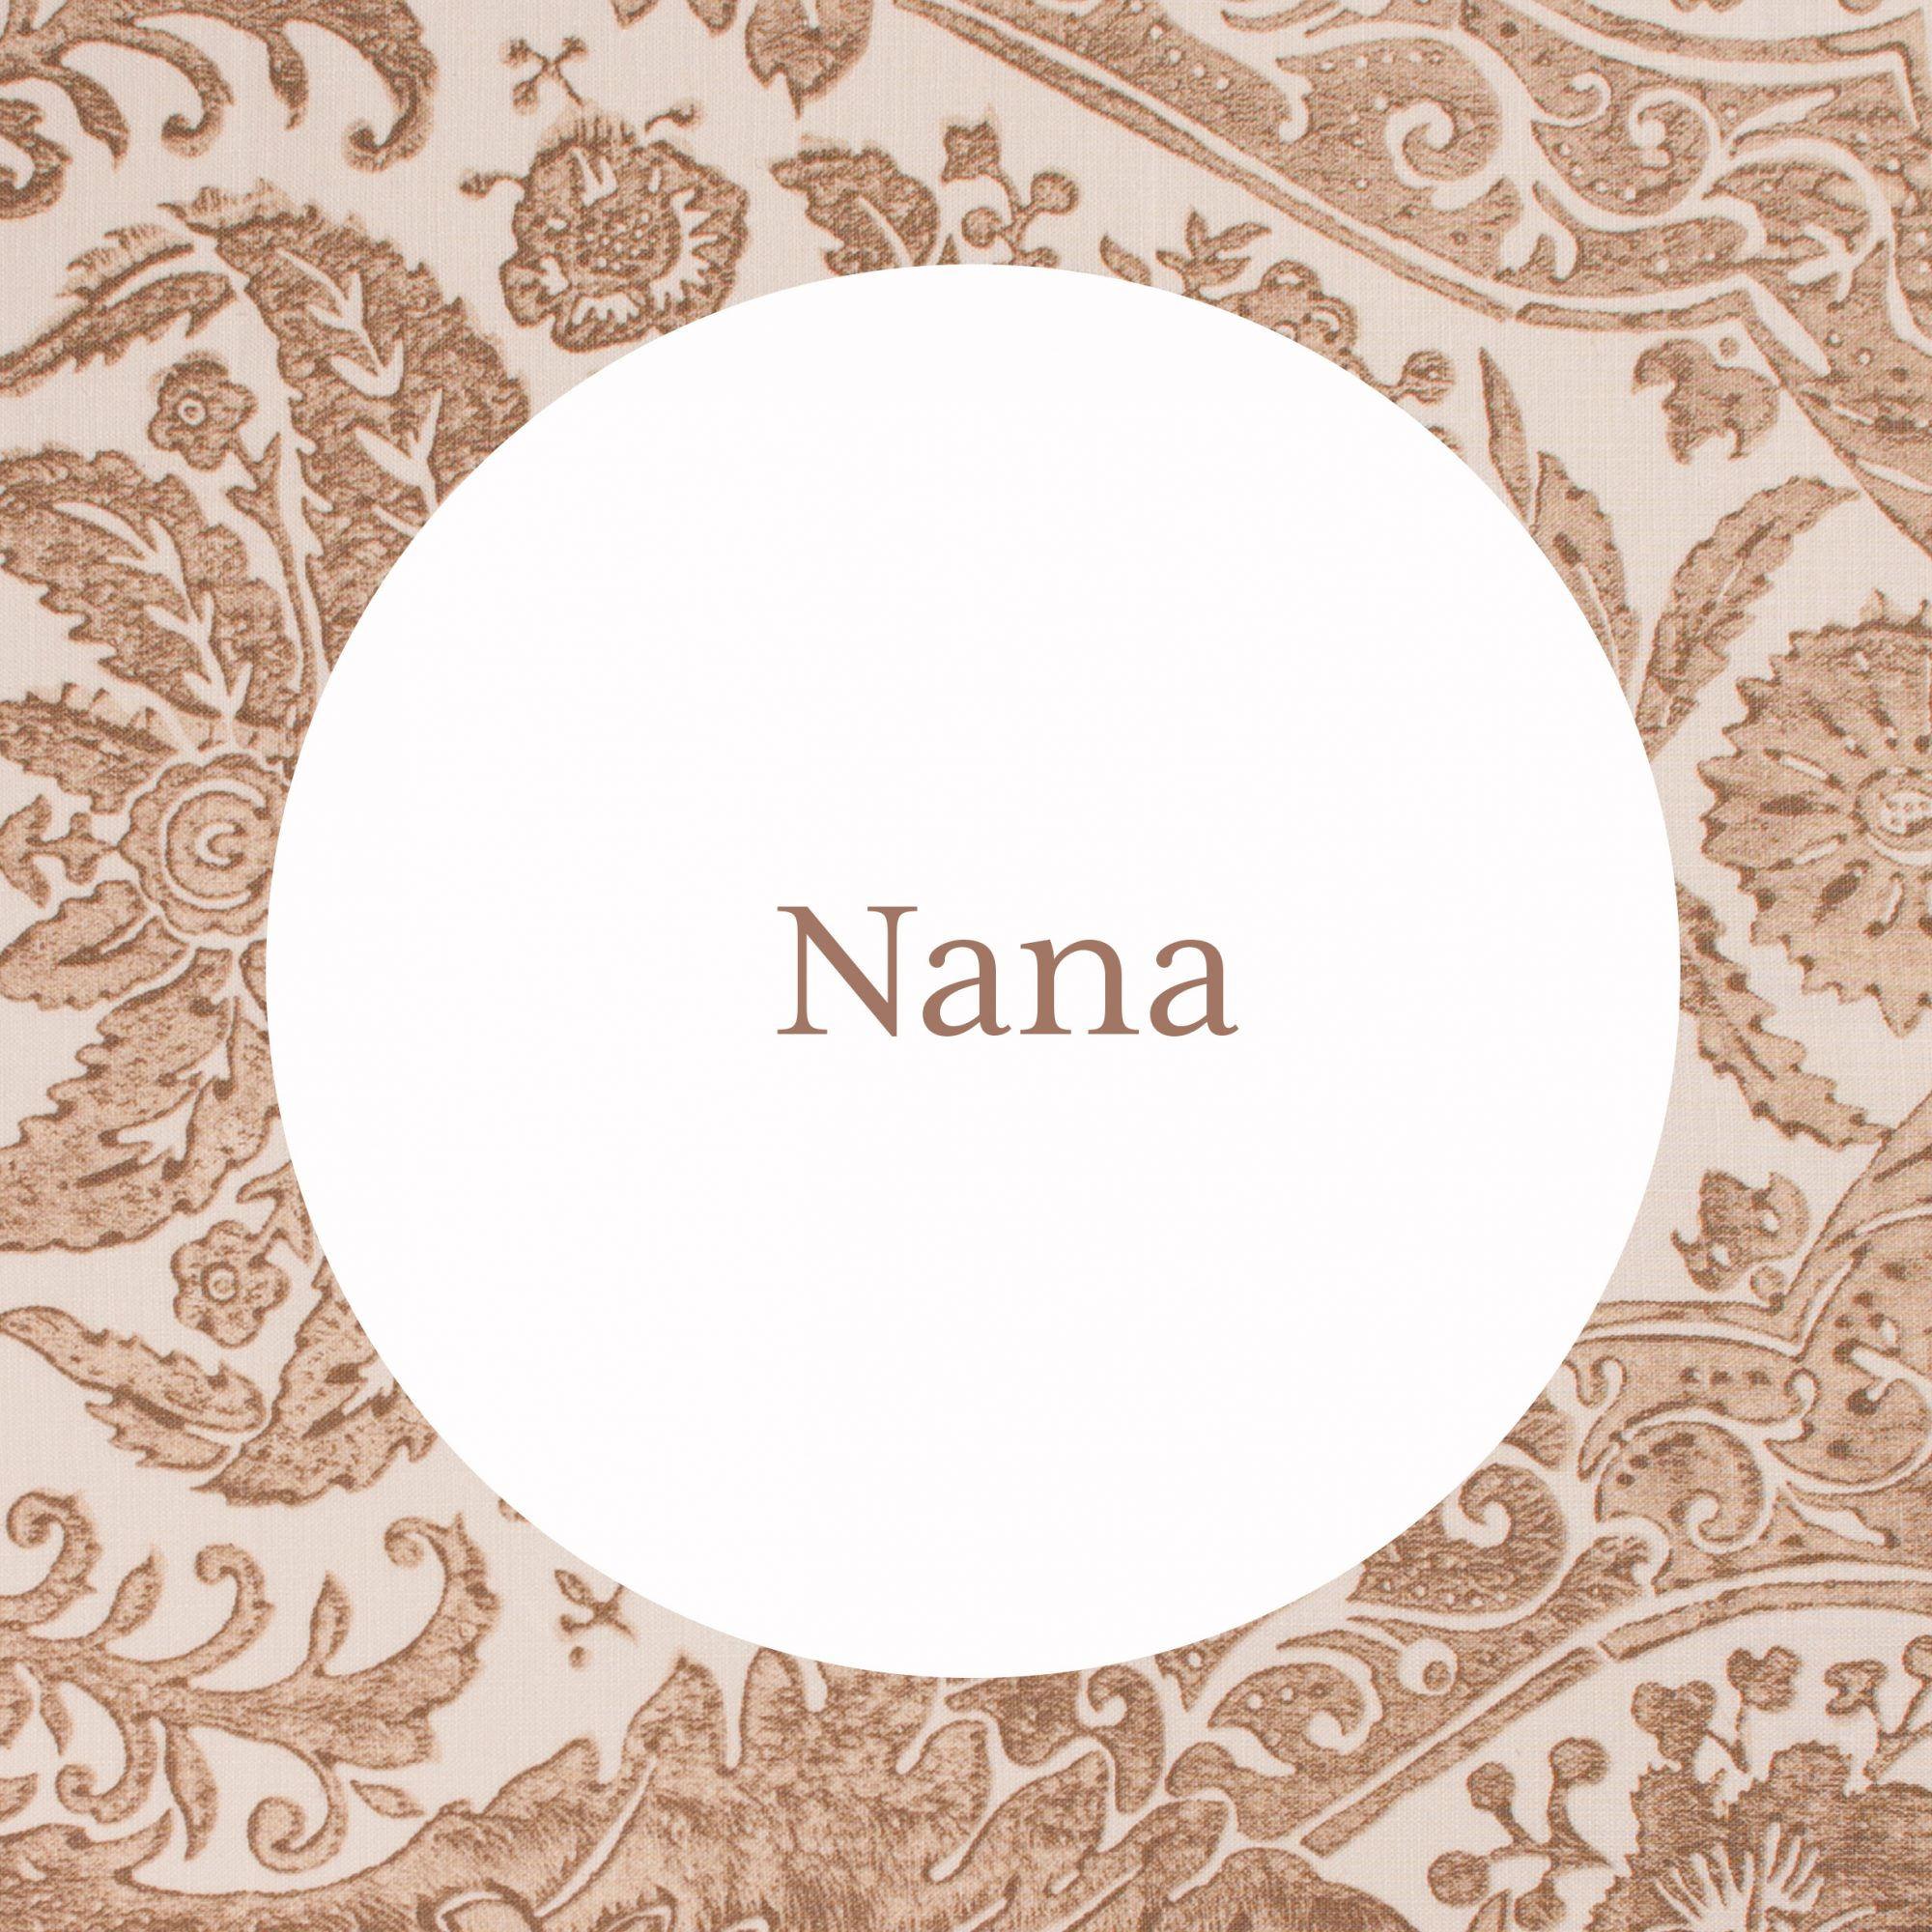 Nana Grandmother Name